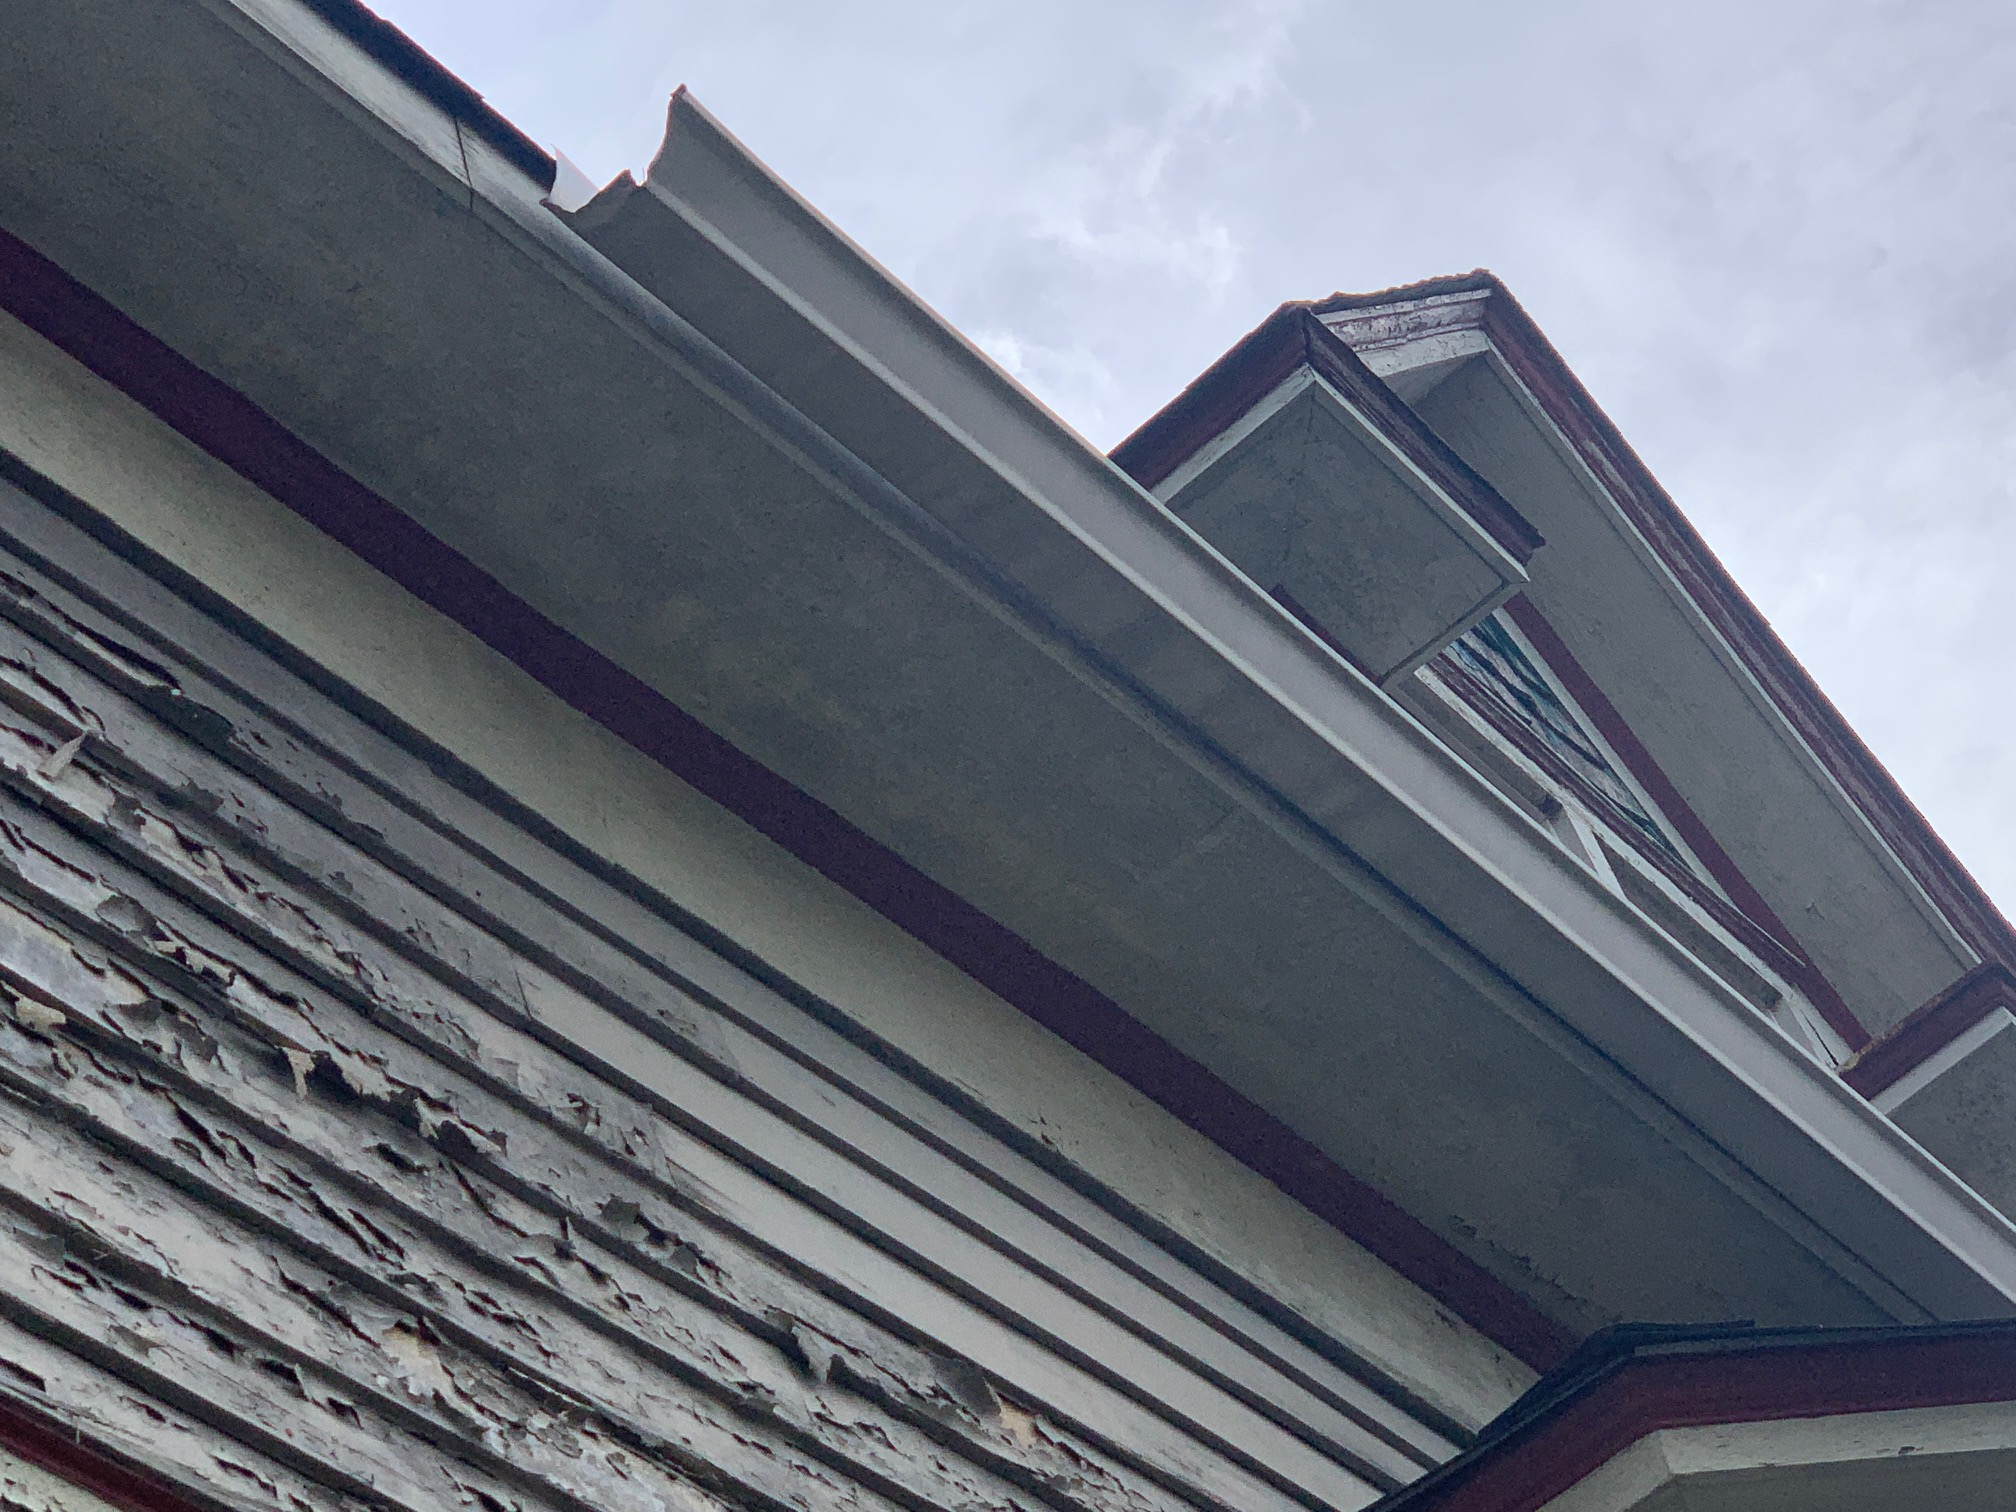 soffits and fascia board on this honme are in need of some minor repairs.  All gutters need replaced